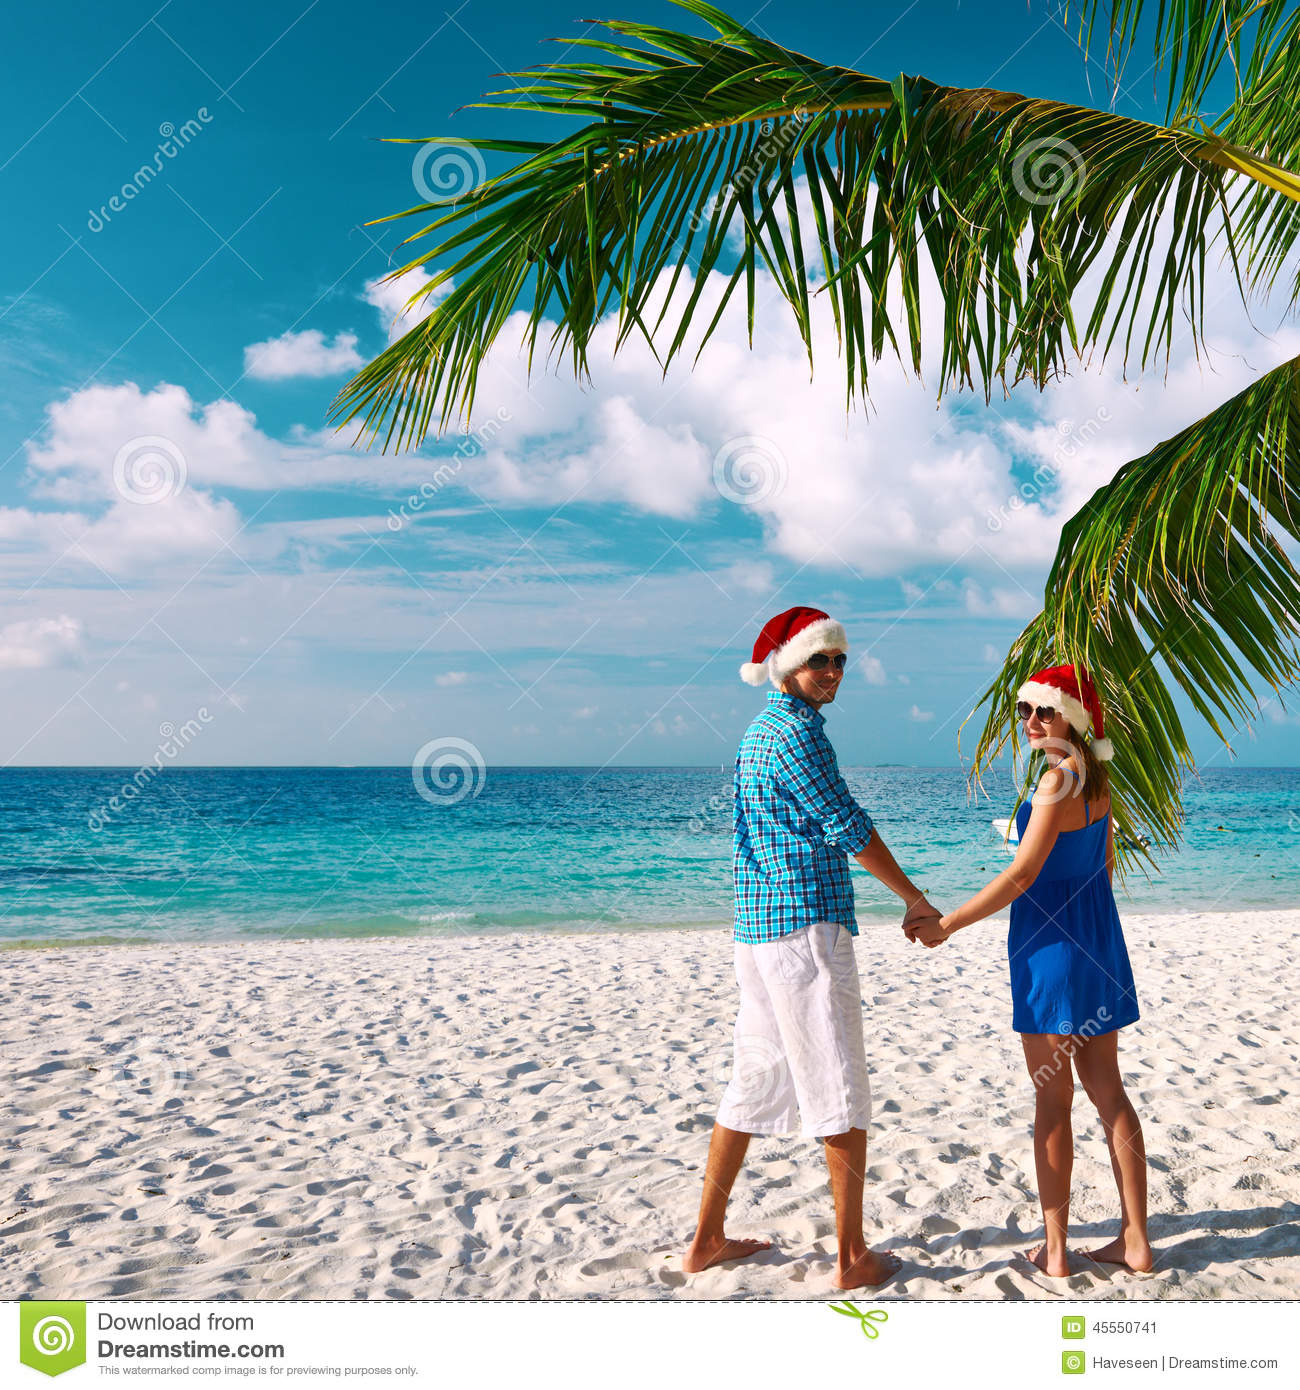 Couple At The Beach Stock Image Image Of Caucasian: Couple In Blue Clothes On A Beach At Christmas Stock Image